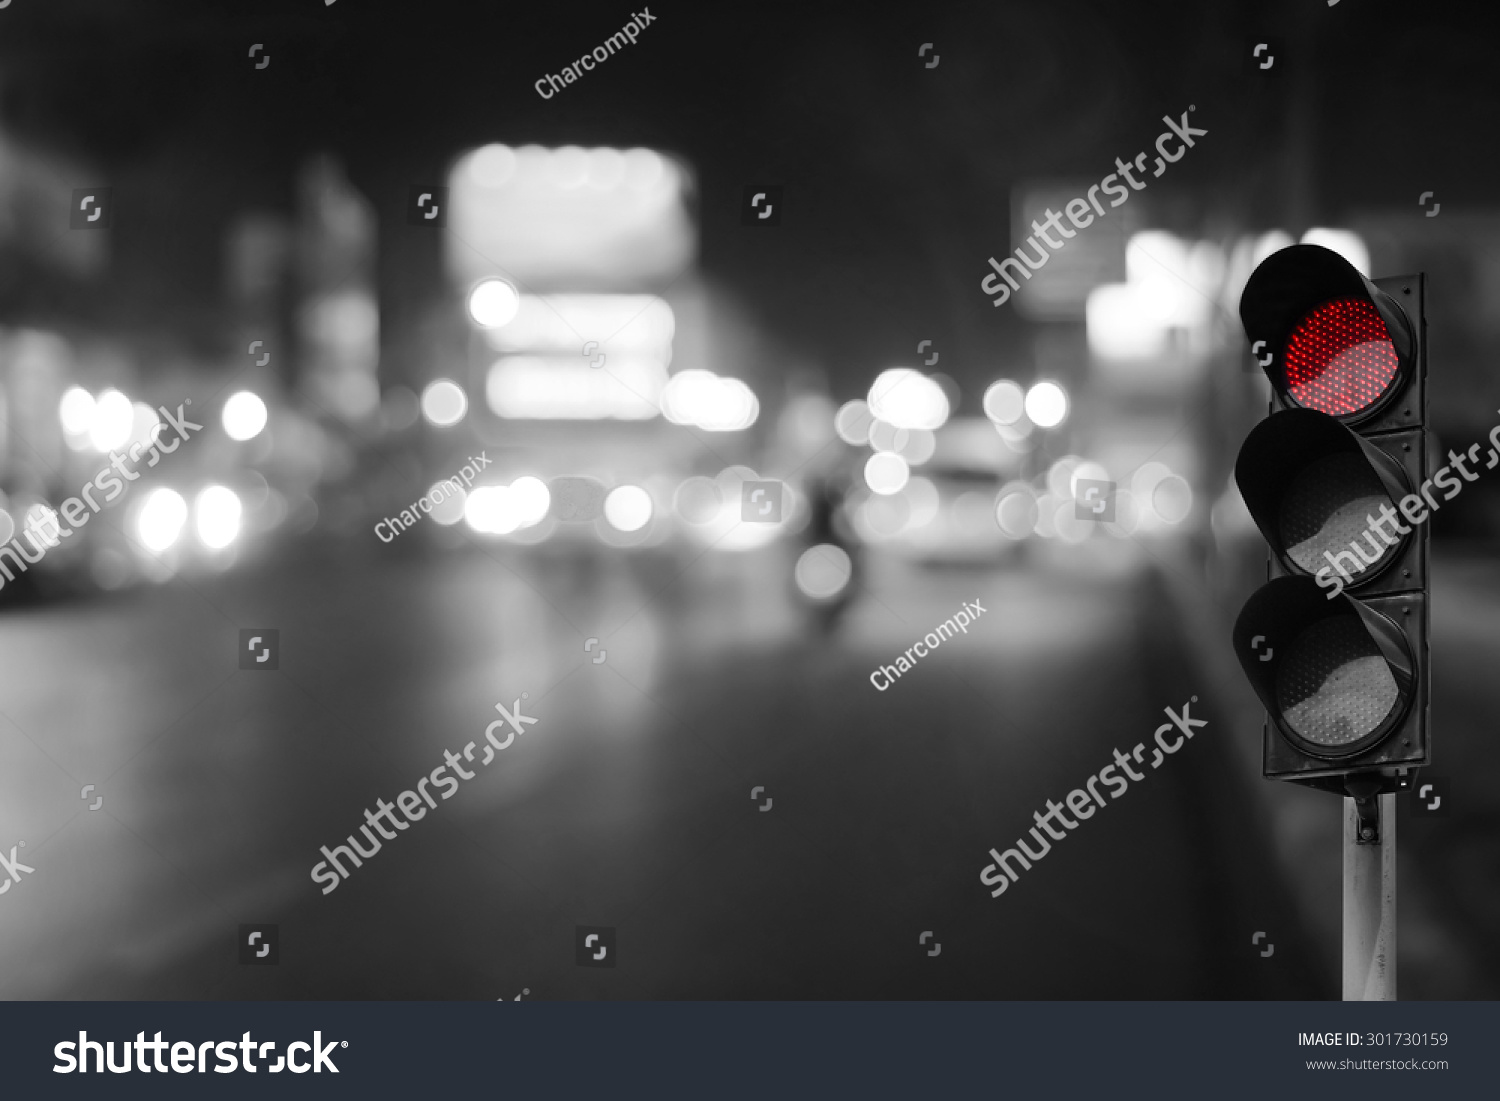 Red Traffic Light On Road Night Stock Photo 301730159 - Shutterstock for Traffic Light On Road At Night  181obs